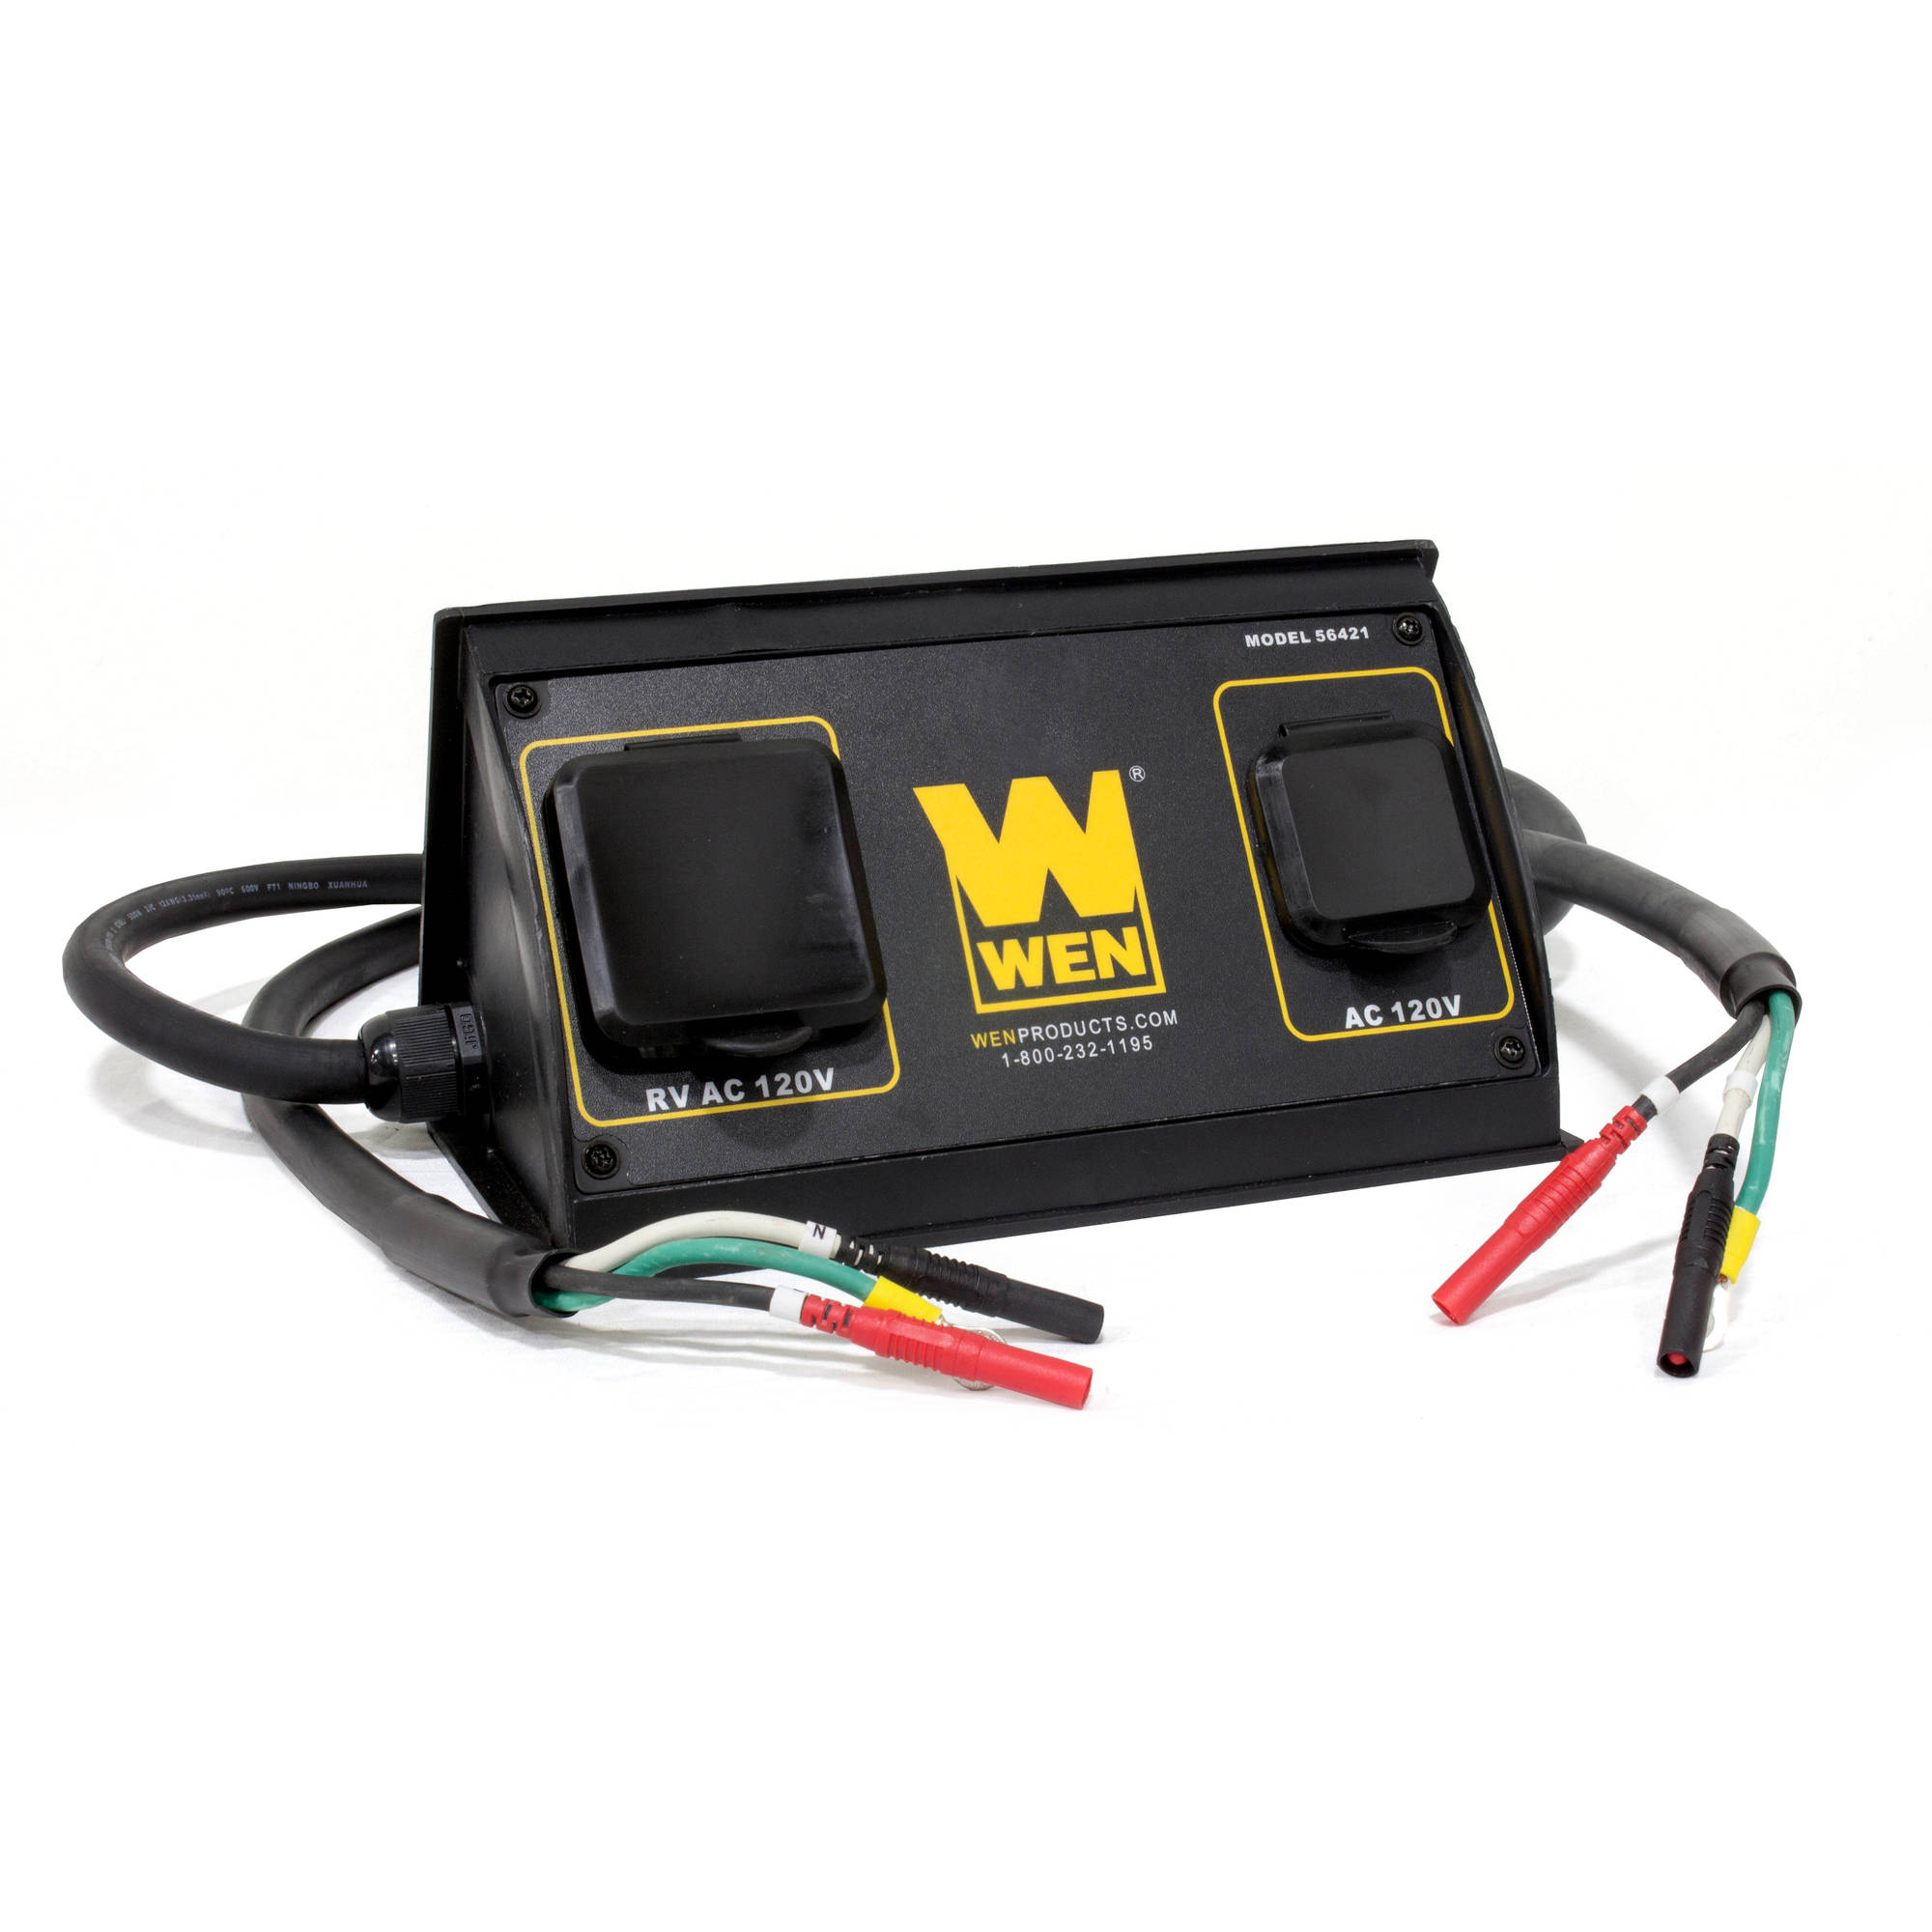 WEN Parallel Connection Kit for Inverter Generators